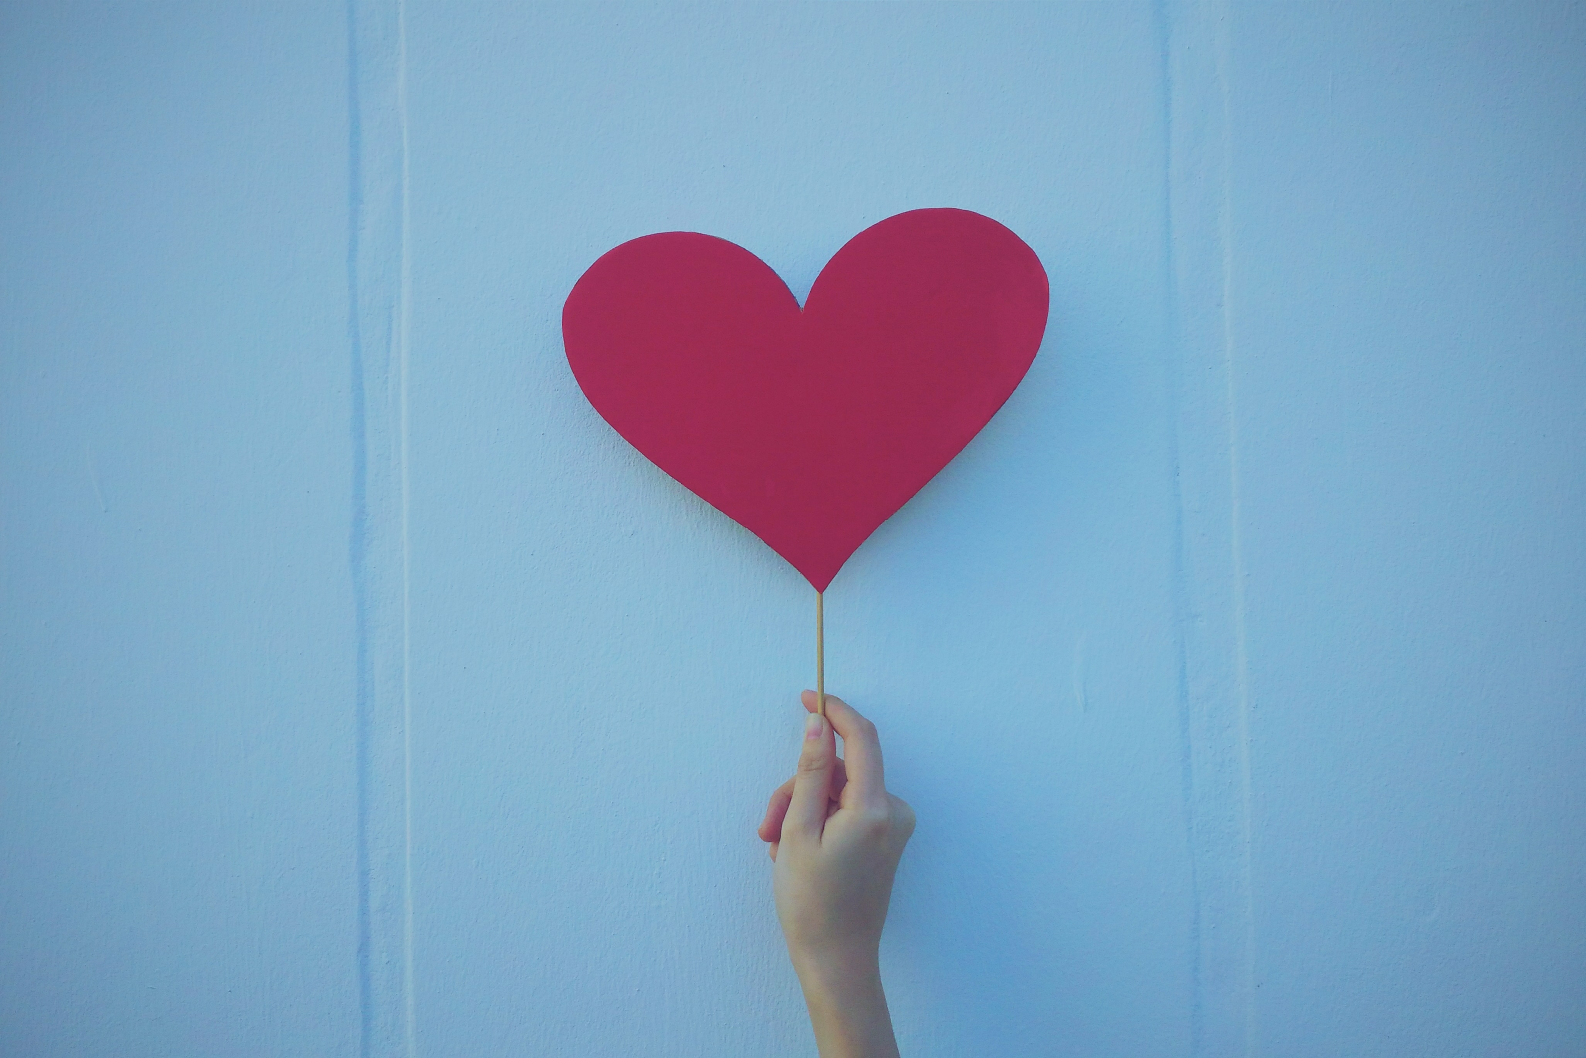 A hand holding out a heart paper cut-out